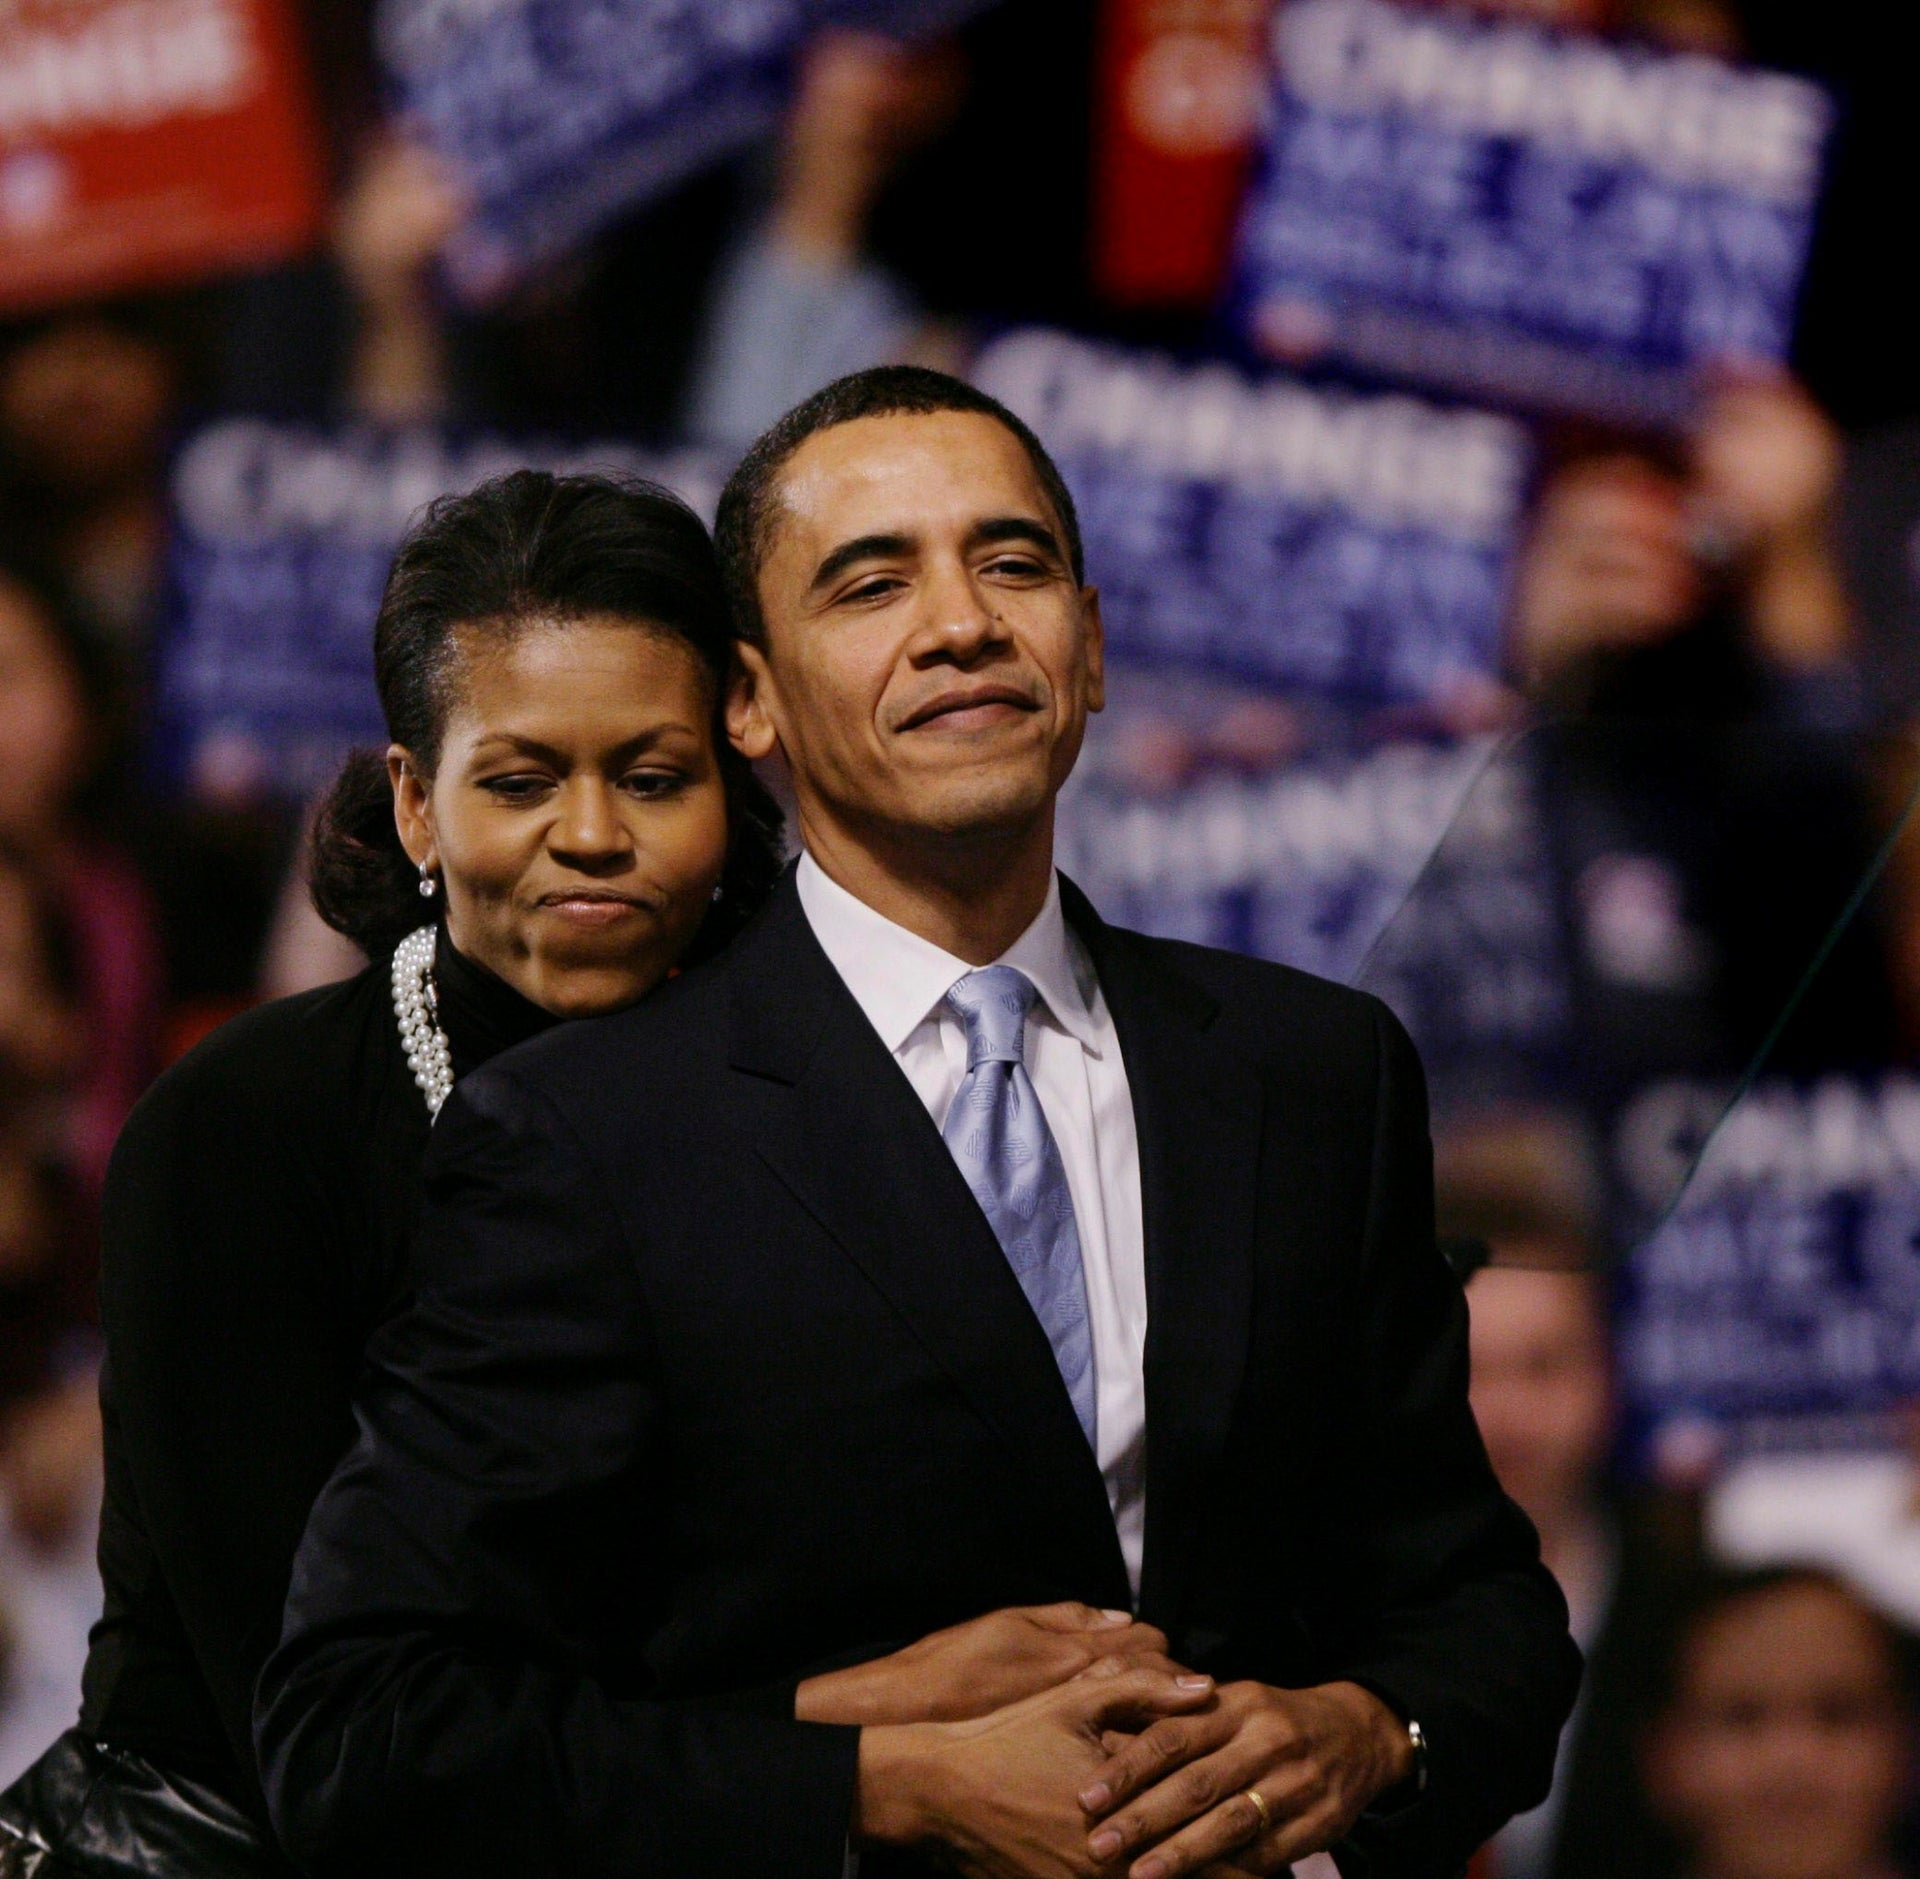 Barack Obama and wife Michelle at at his election night New Hampshire presidential primary rally in January 2008.